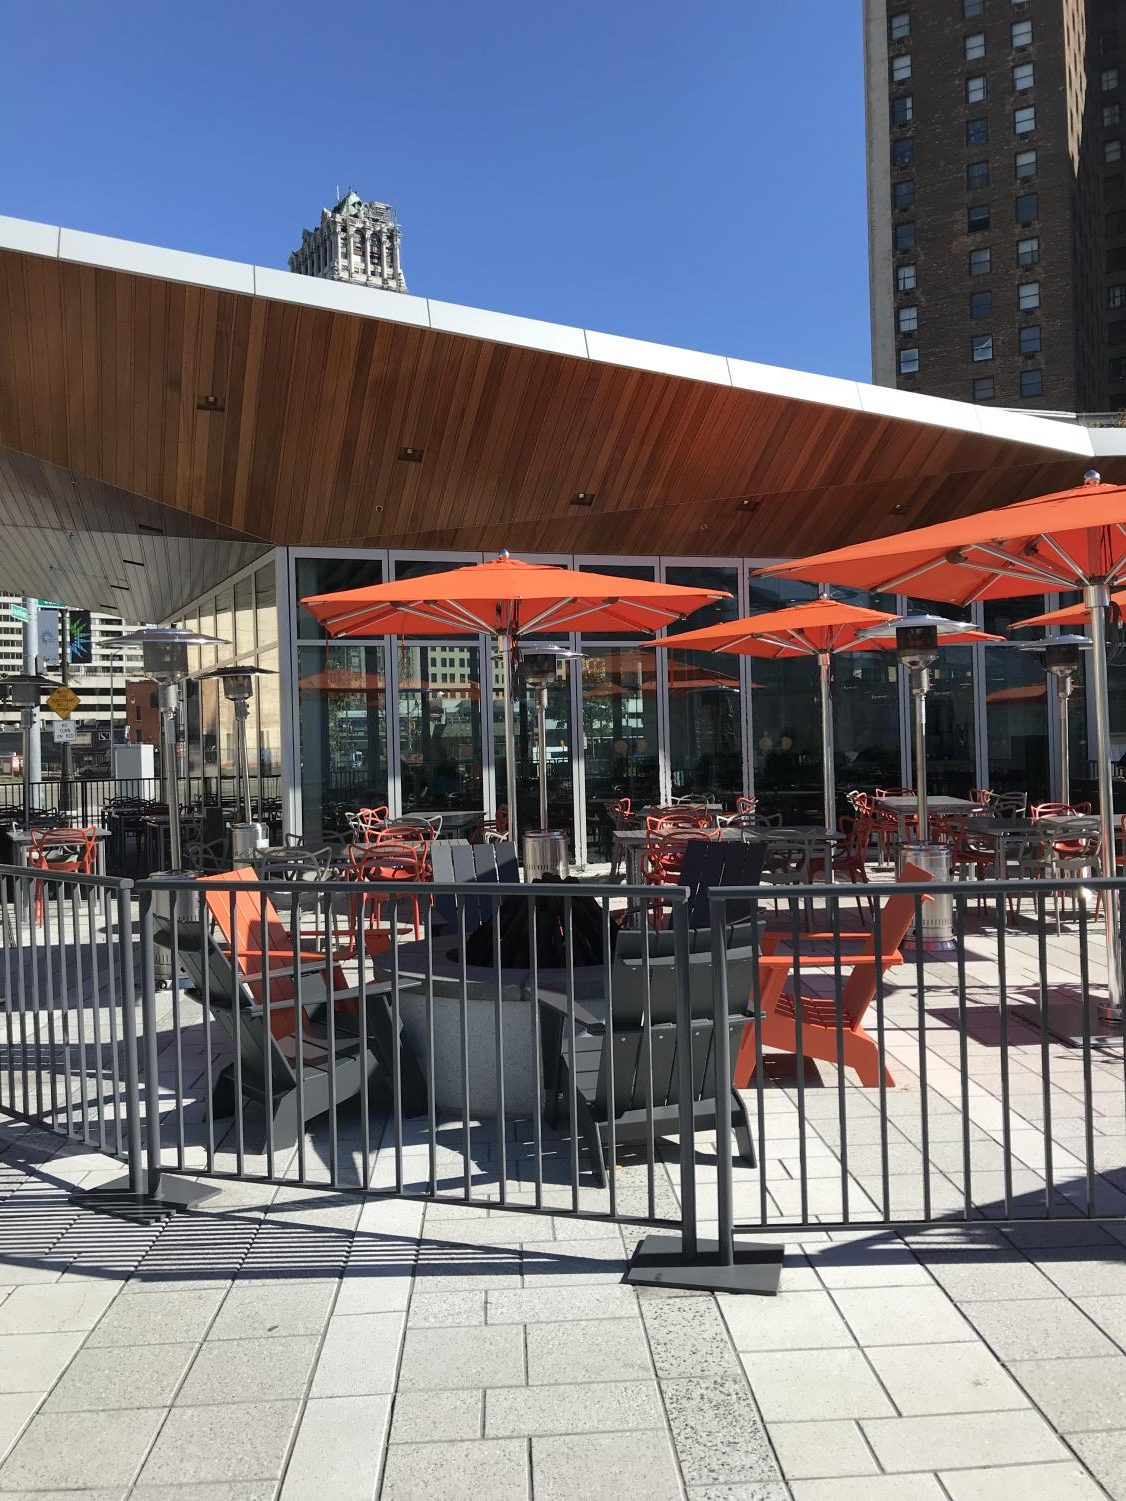 Lumen's impressive outdoor patio serves up a great experience.